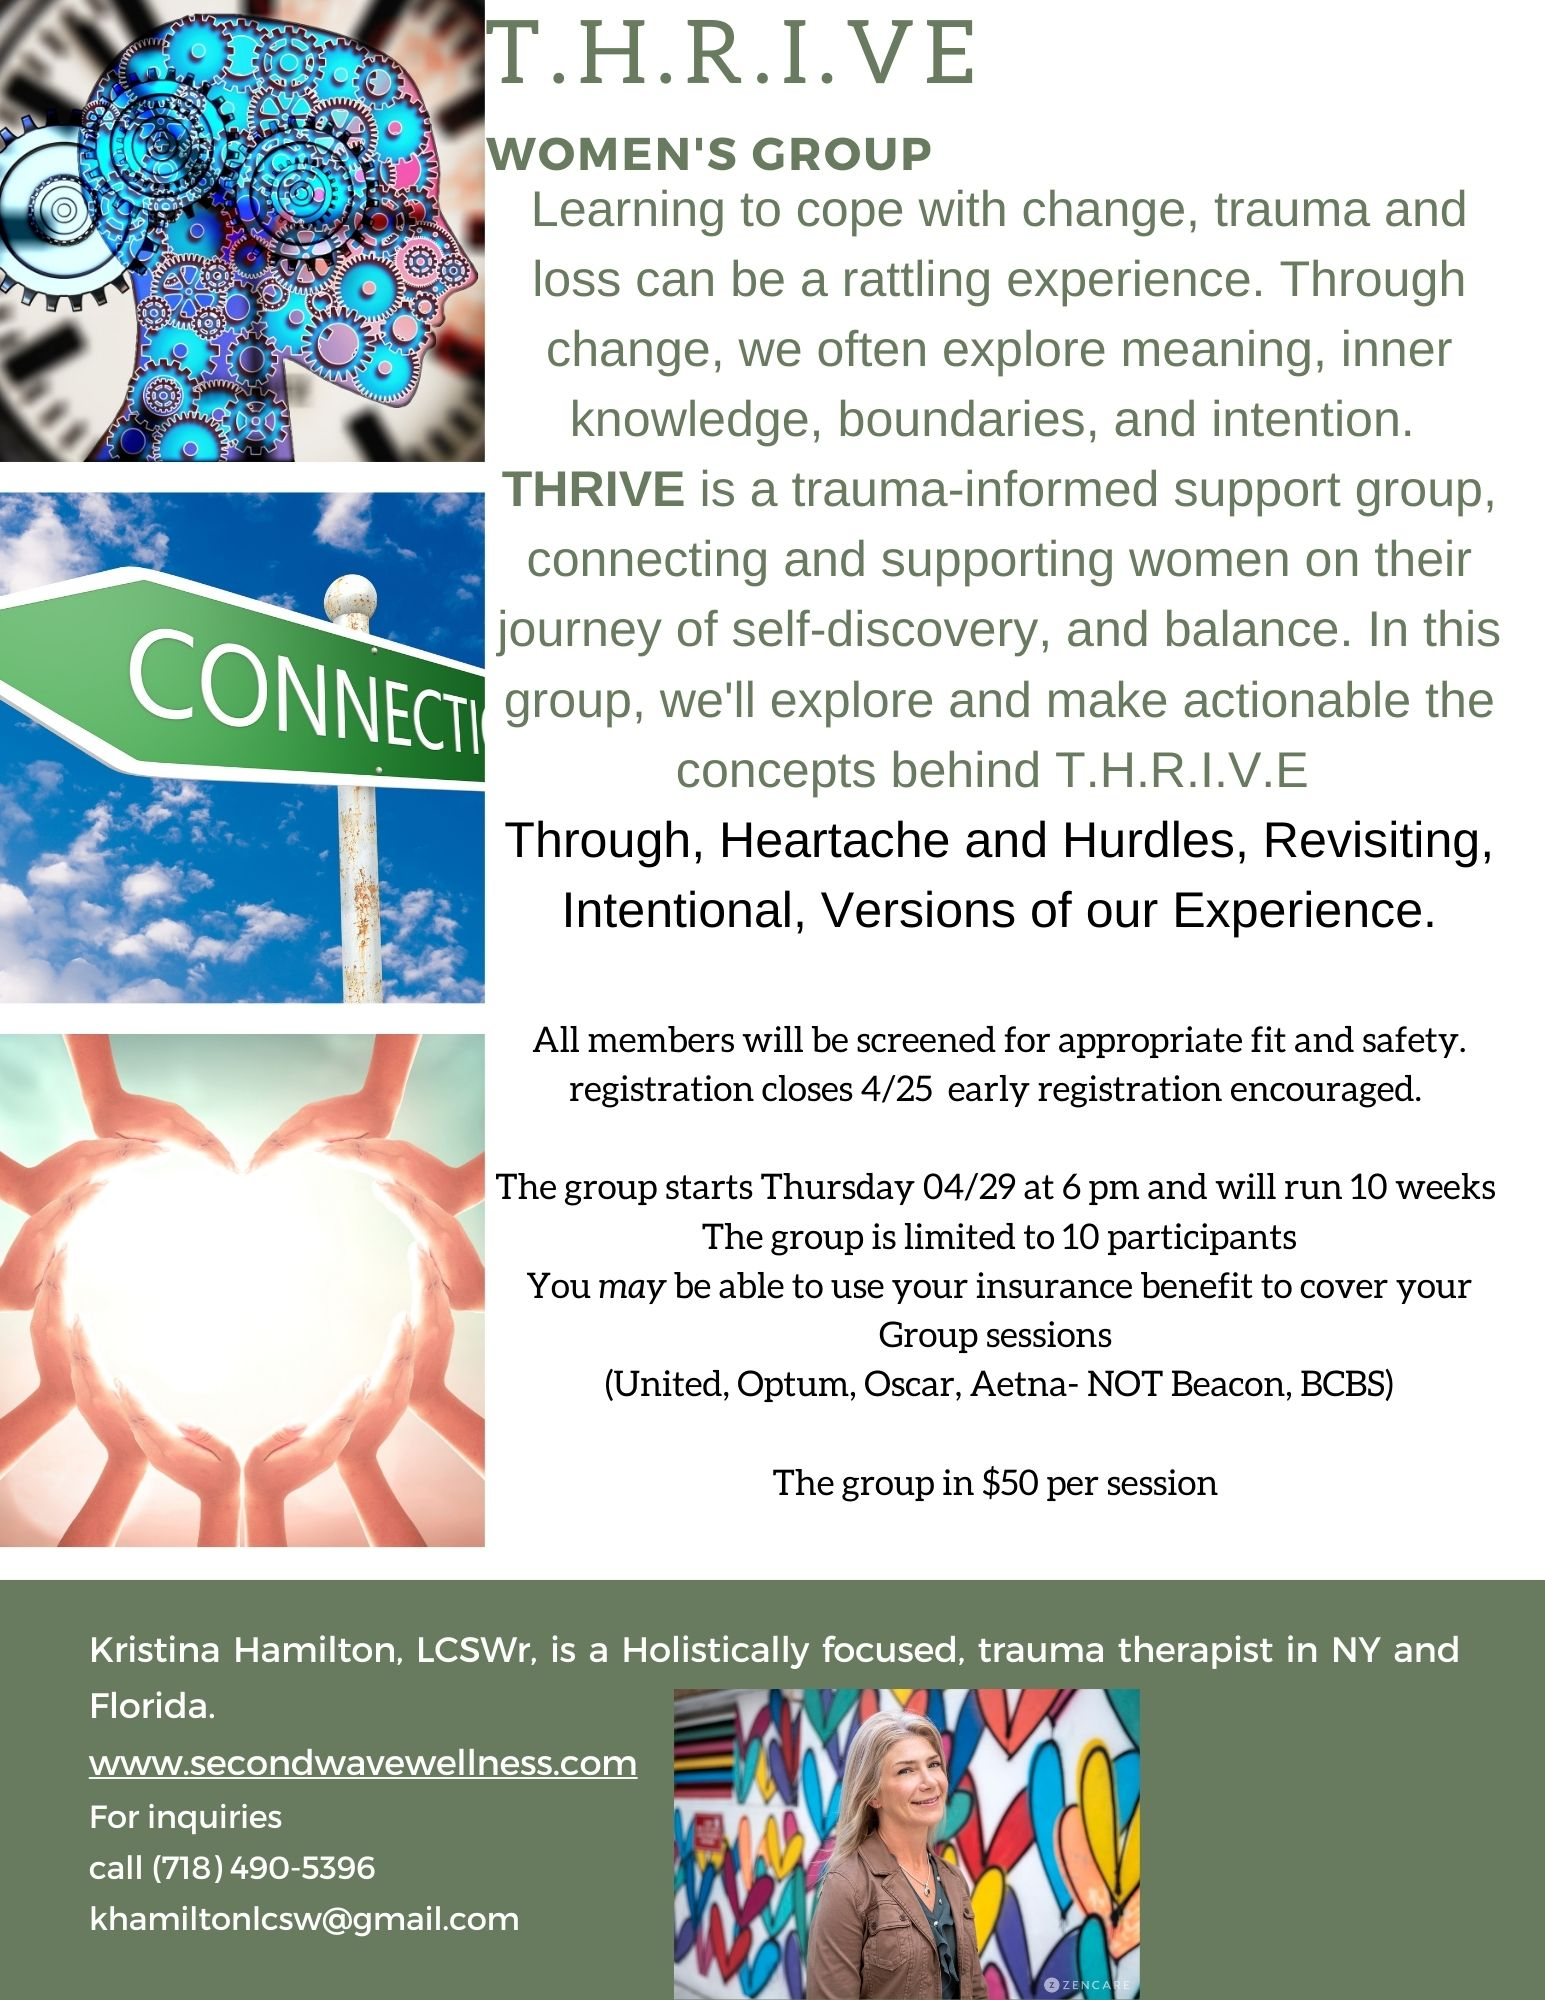 T.H.R.I.V.E  Trauma informed Women's Group